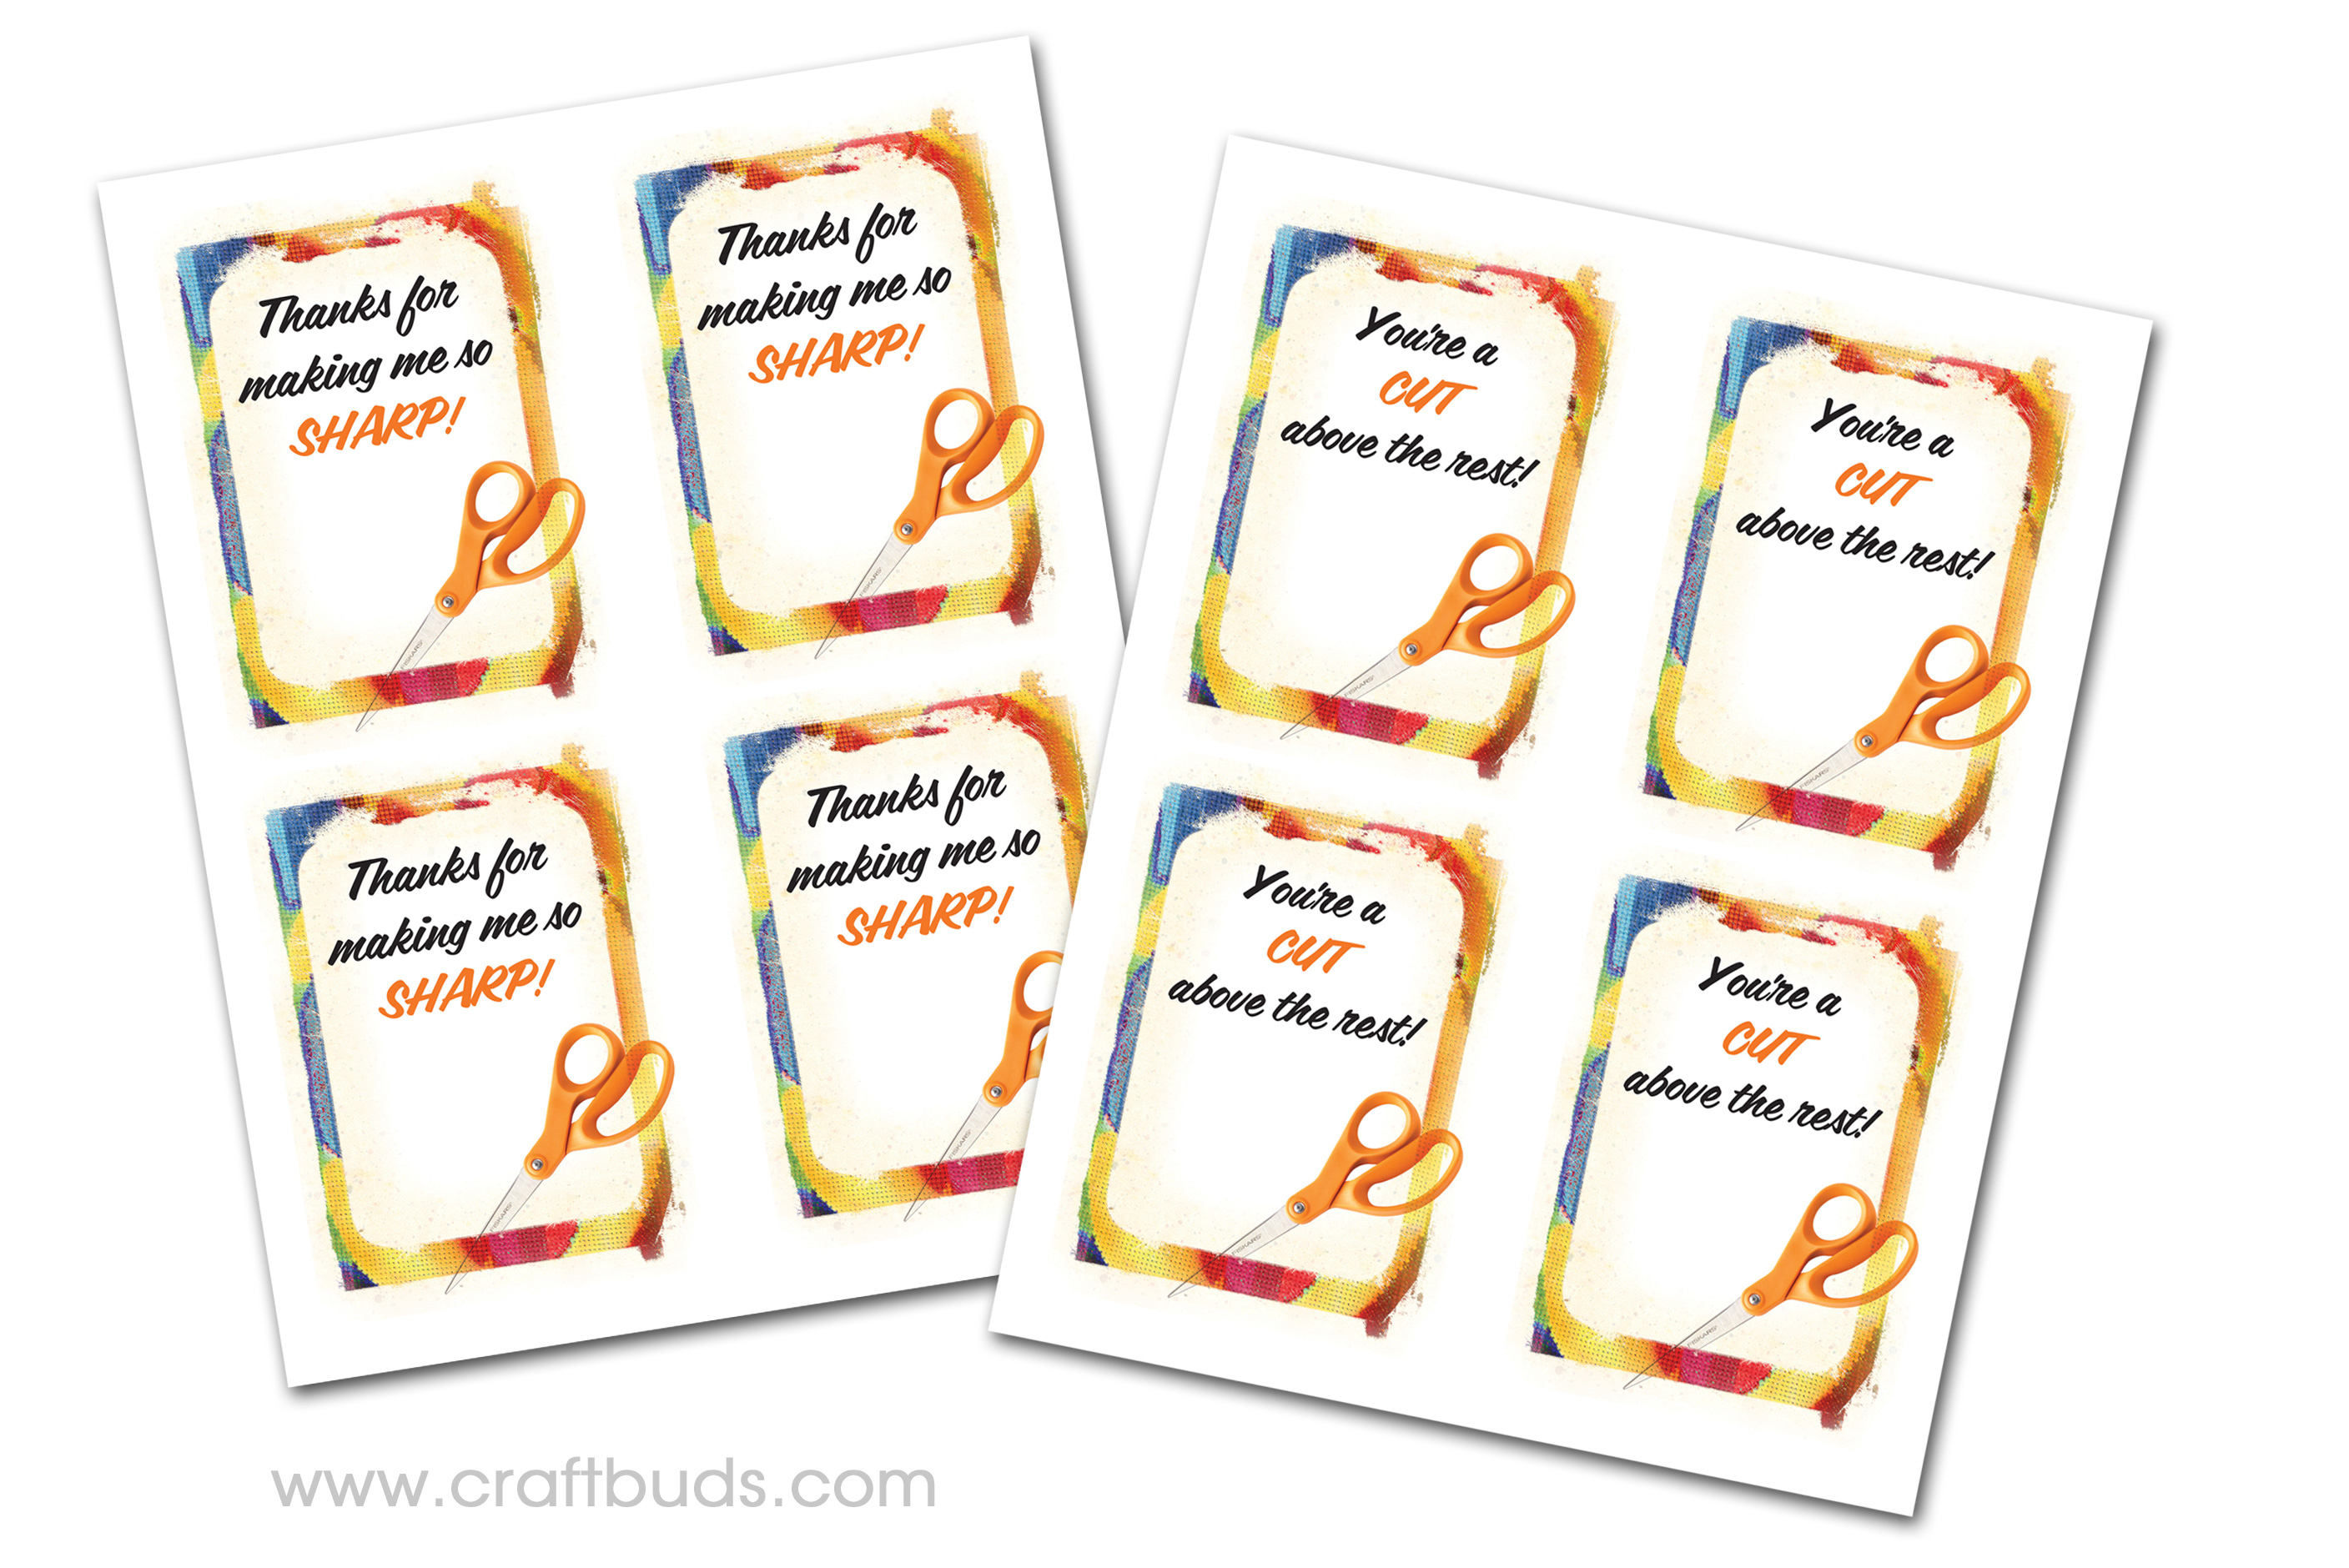 Fast Teacher Appreciation Gift! (+ Free Printable) | Craft Buds - Free Printable Tags For Teacher Appreciation